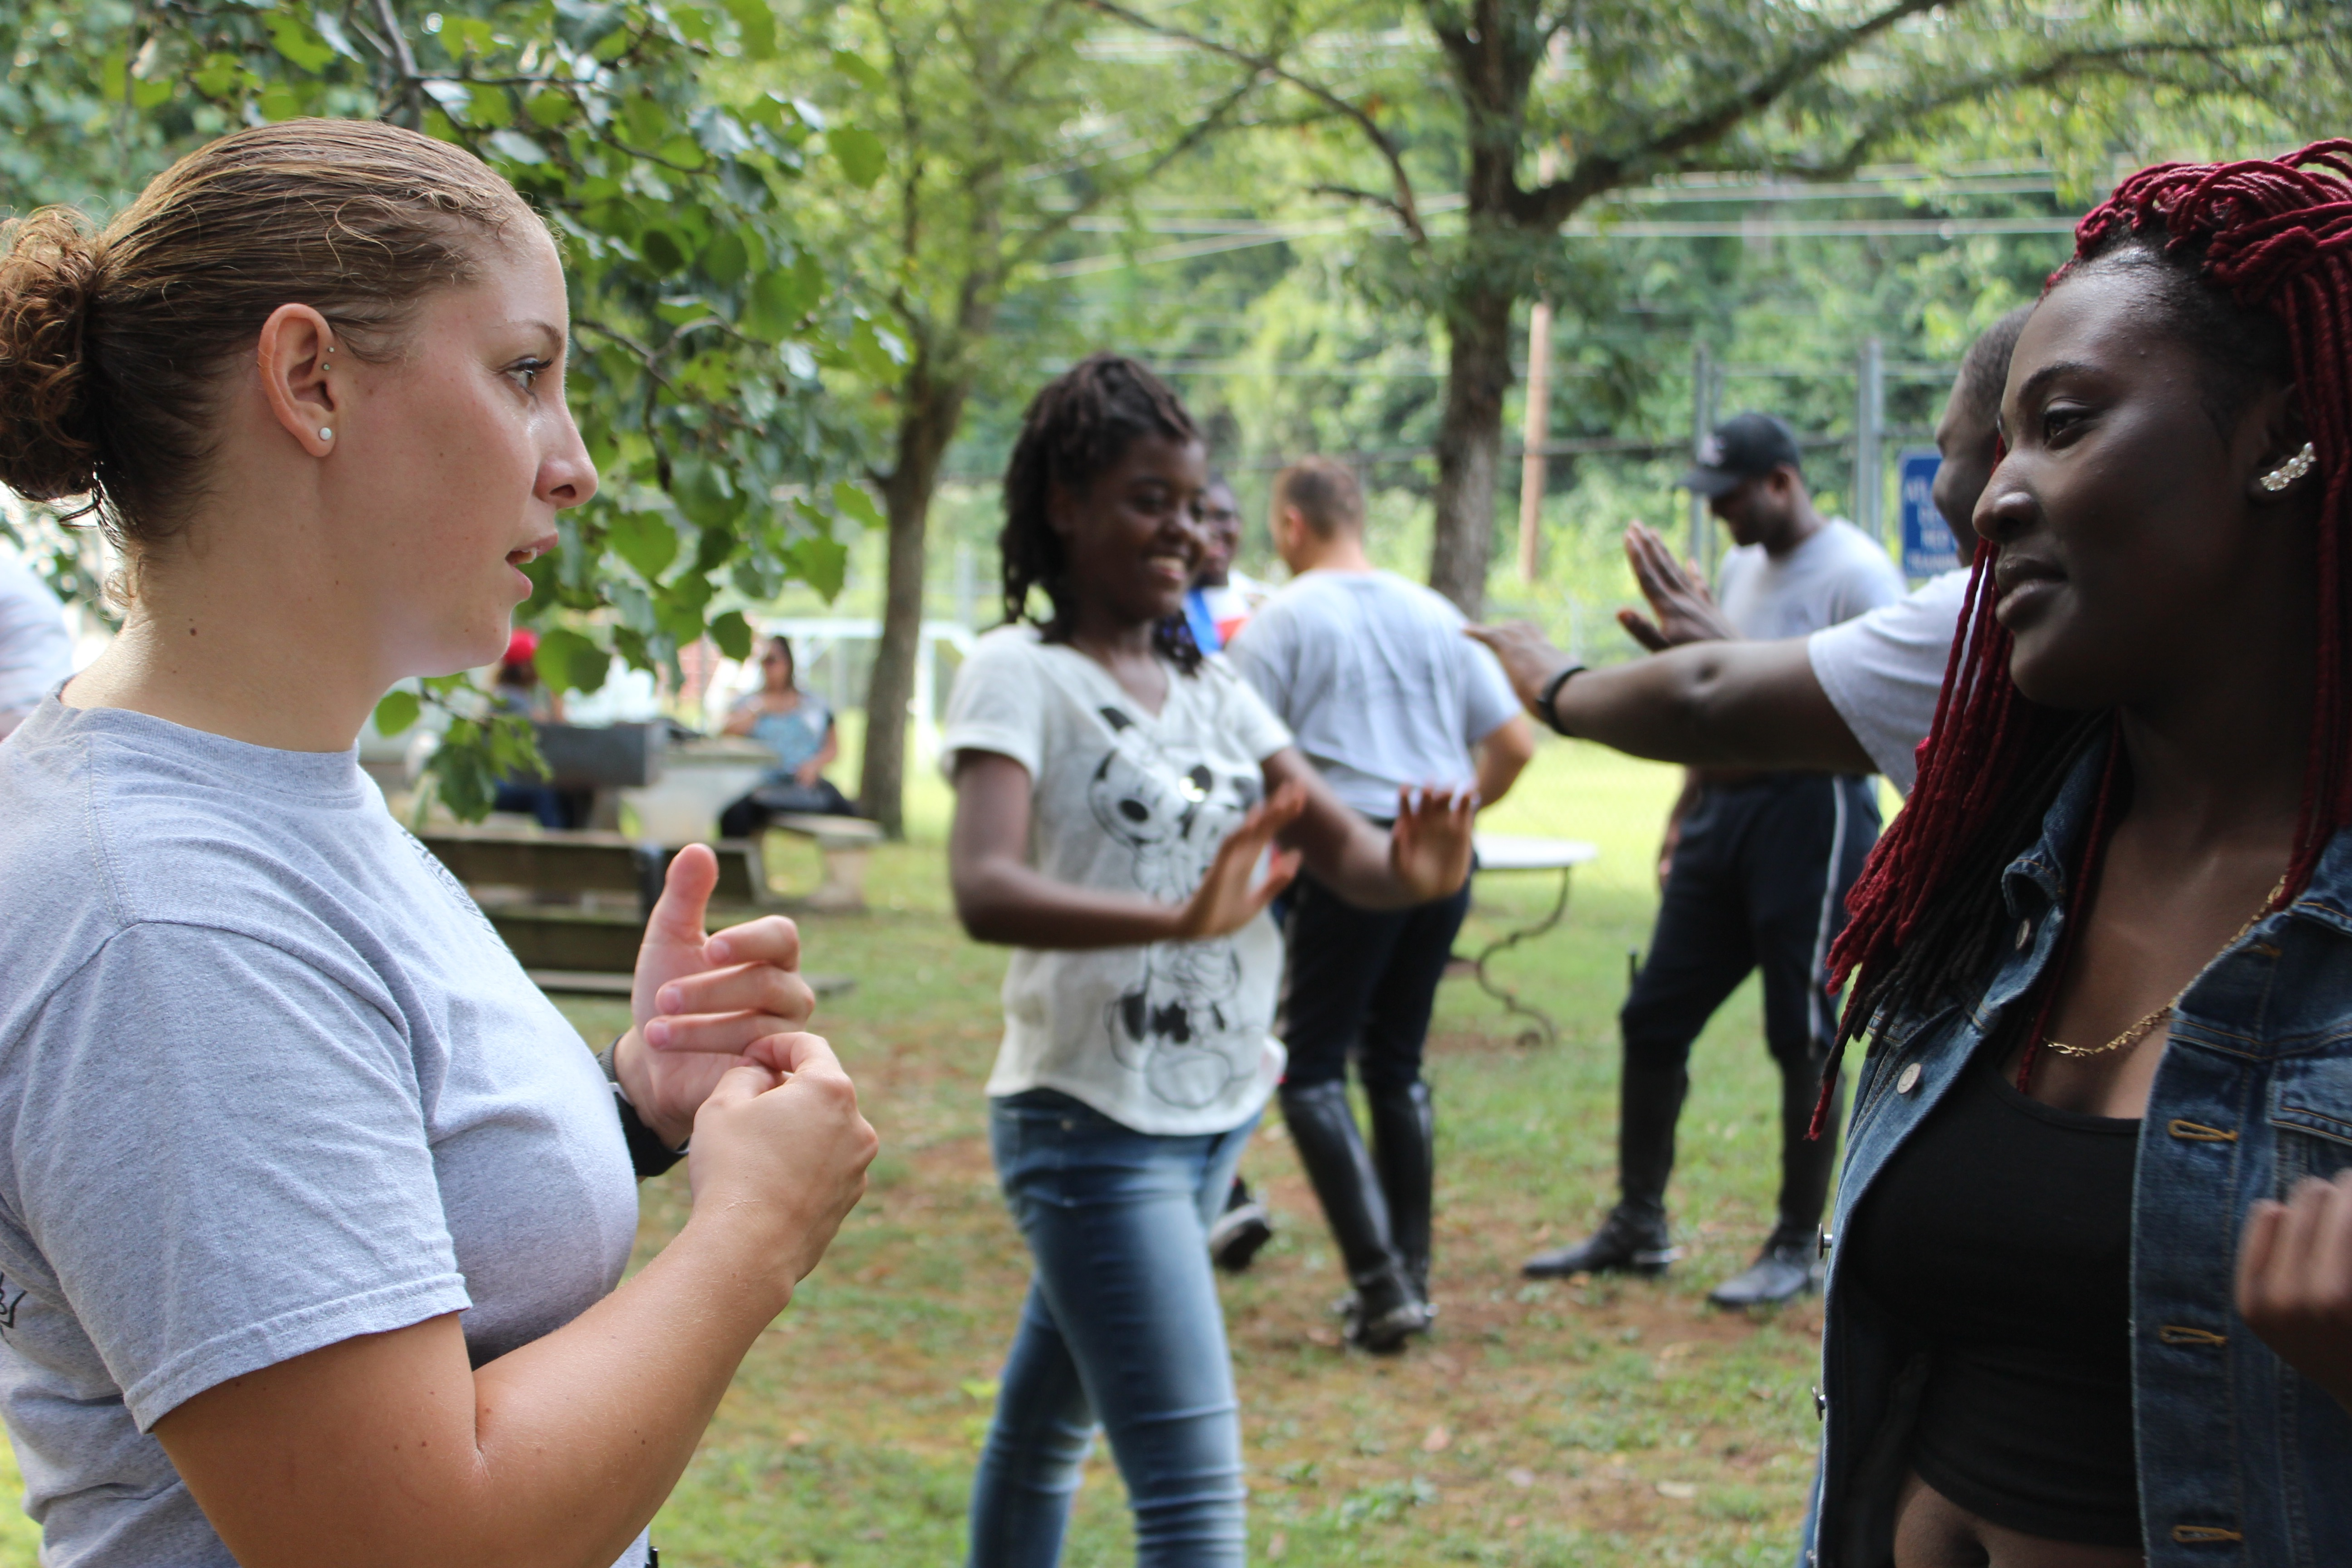 In a regular Atlanta Police Foundation meeting, Aug. 31, mounted police officers and their mentorees split into small groups to do trust falls. During this time, groups have time  to bond and catch up.